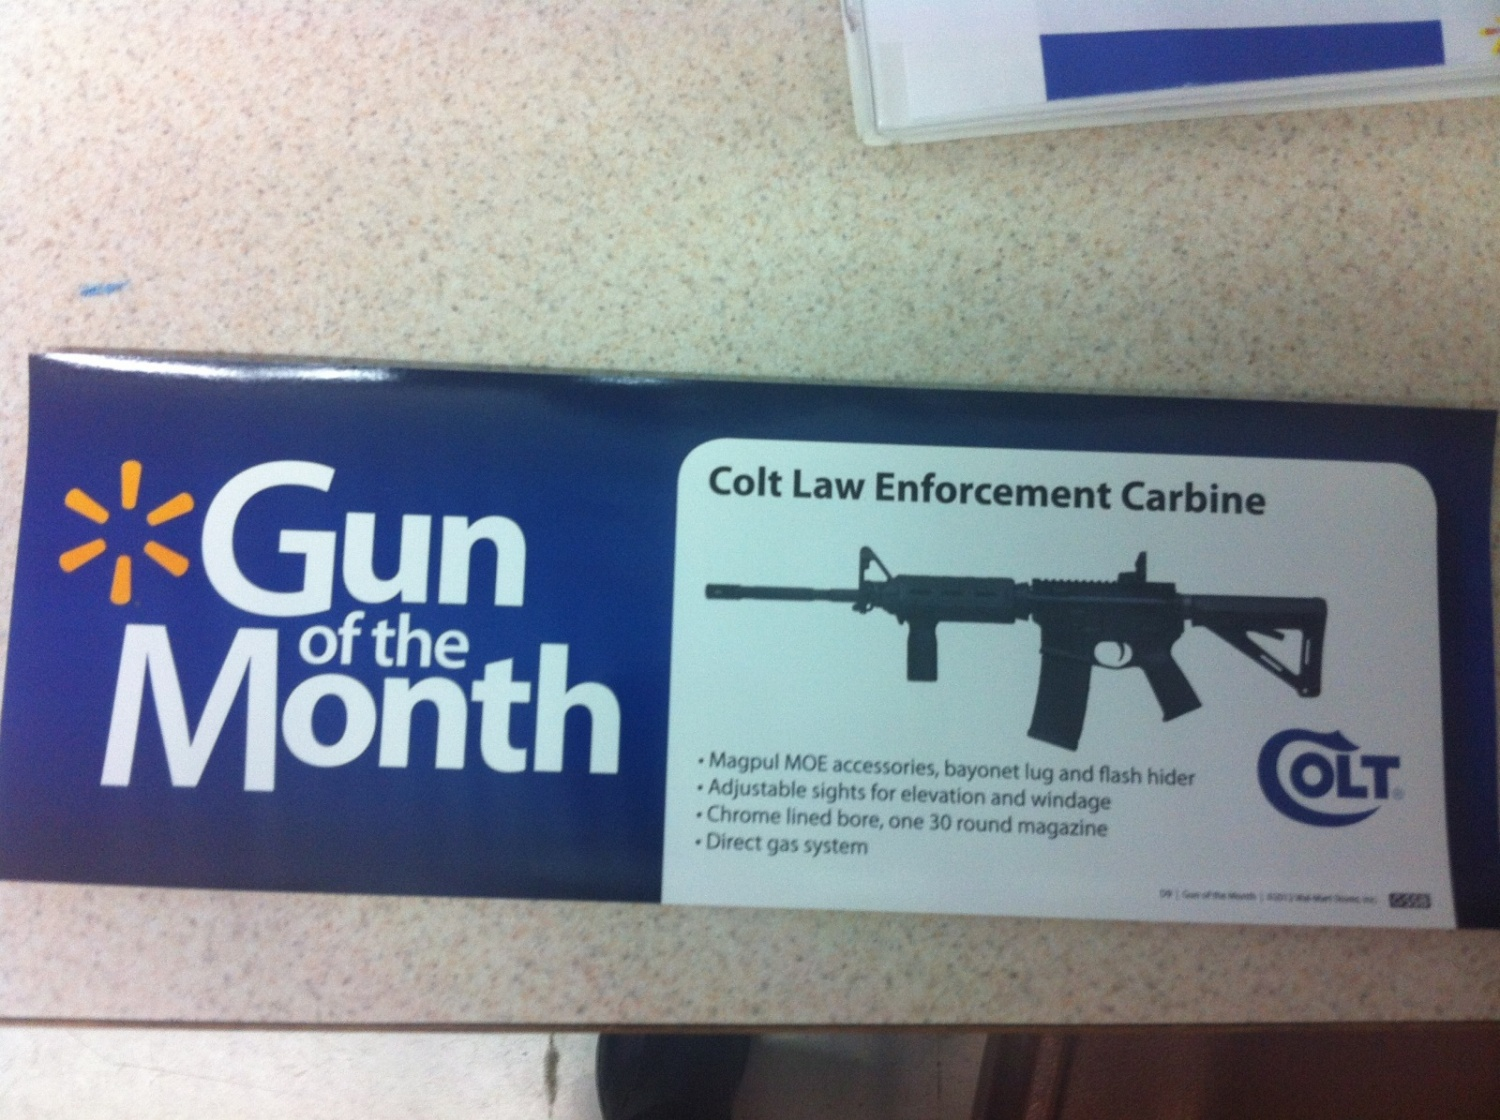 No more of these!